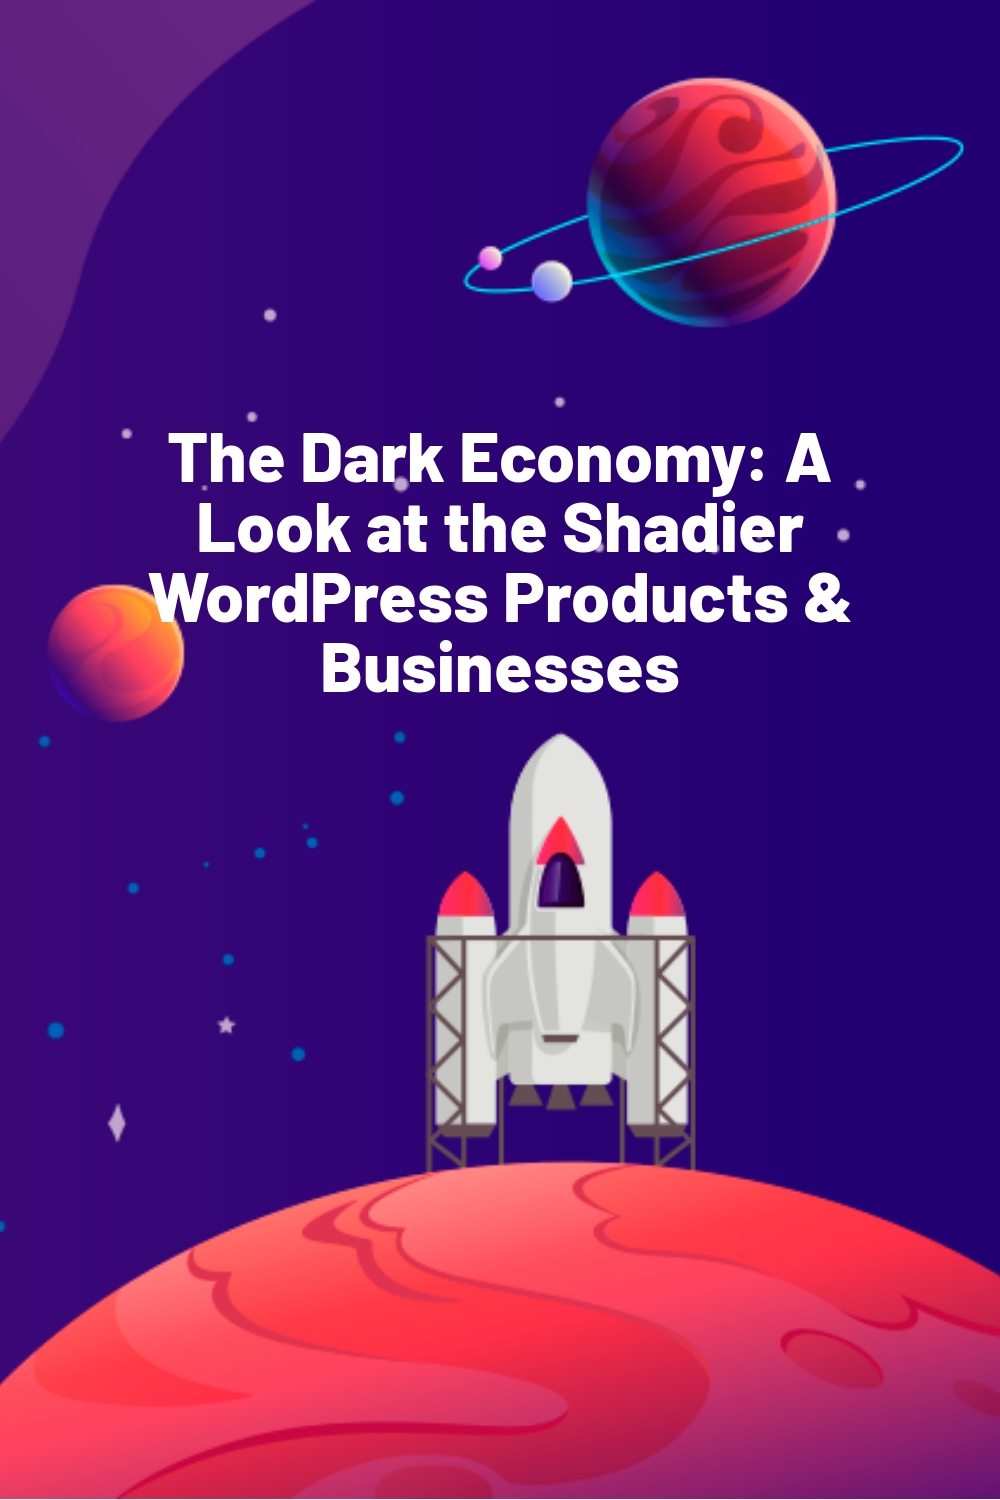 The Dark Economy: A Look at the Shadier WordPress Products & Businesses